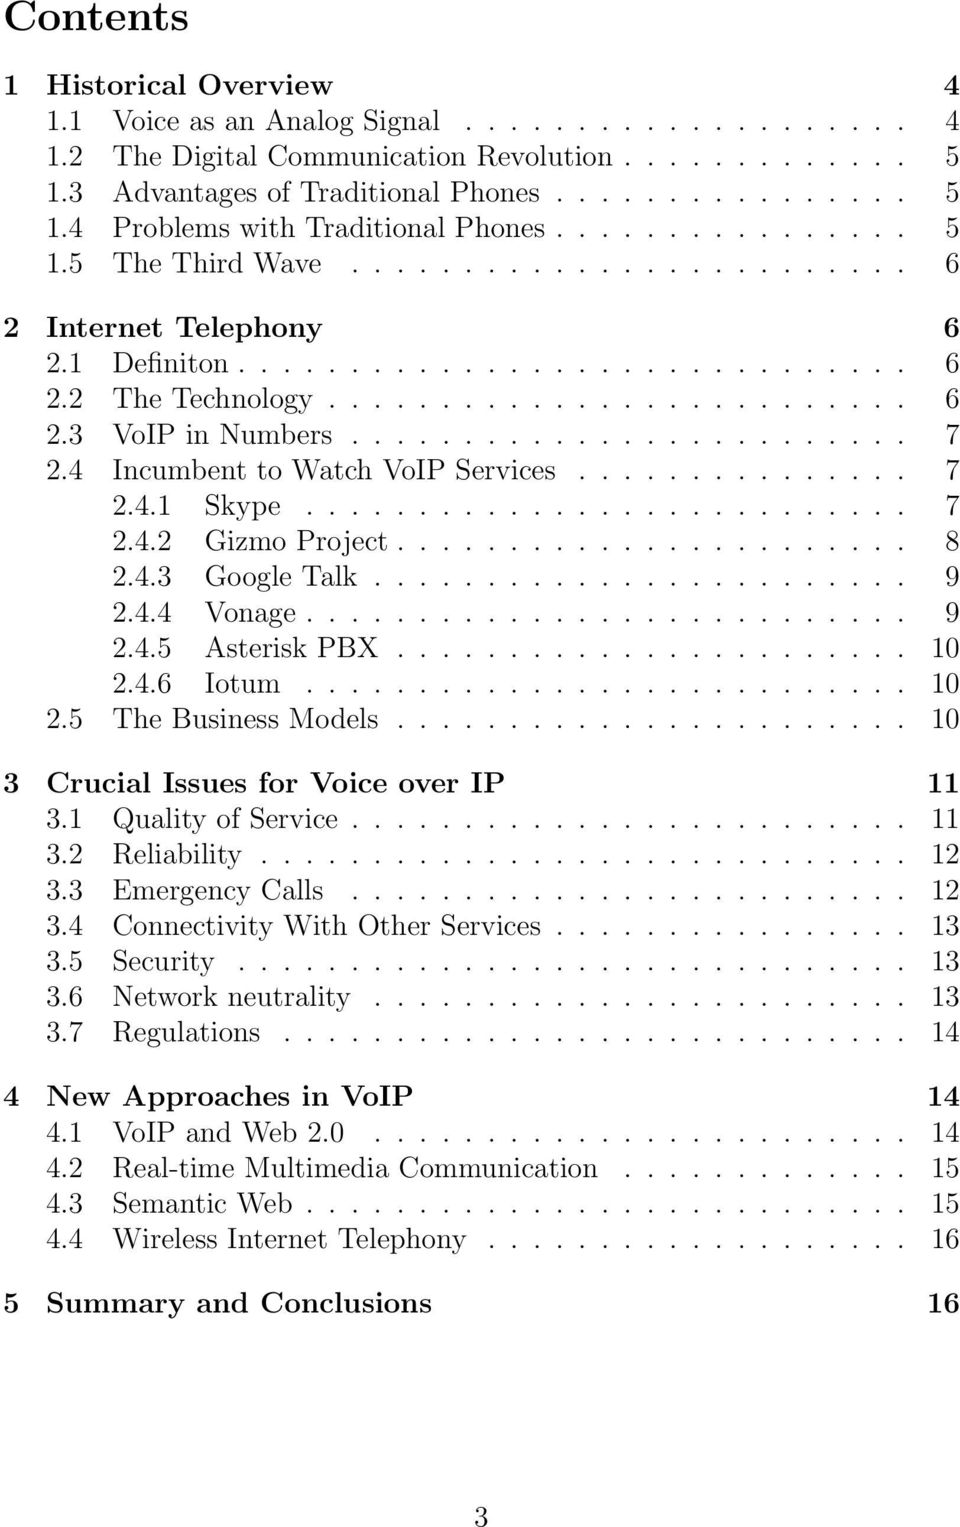 ........................ 7 2.4 Incumbent to Watch VoIP Services............... 7 2.4.1 Skype........................... 7 2.4.2 Gizmo Project....................... 8 2.4.3 Google Talk........................ 9 2.